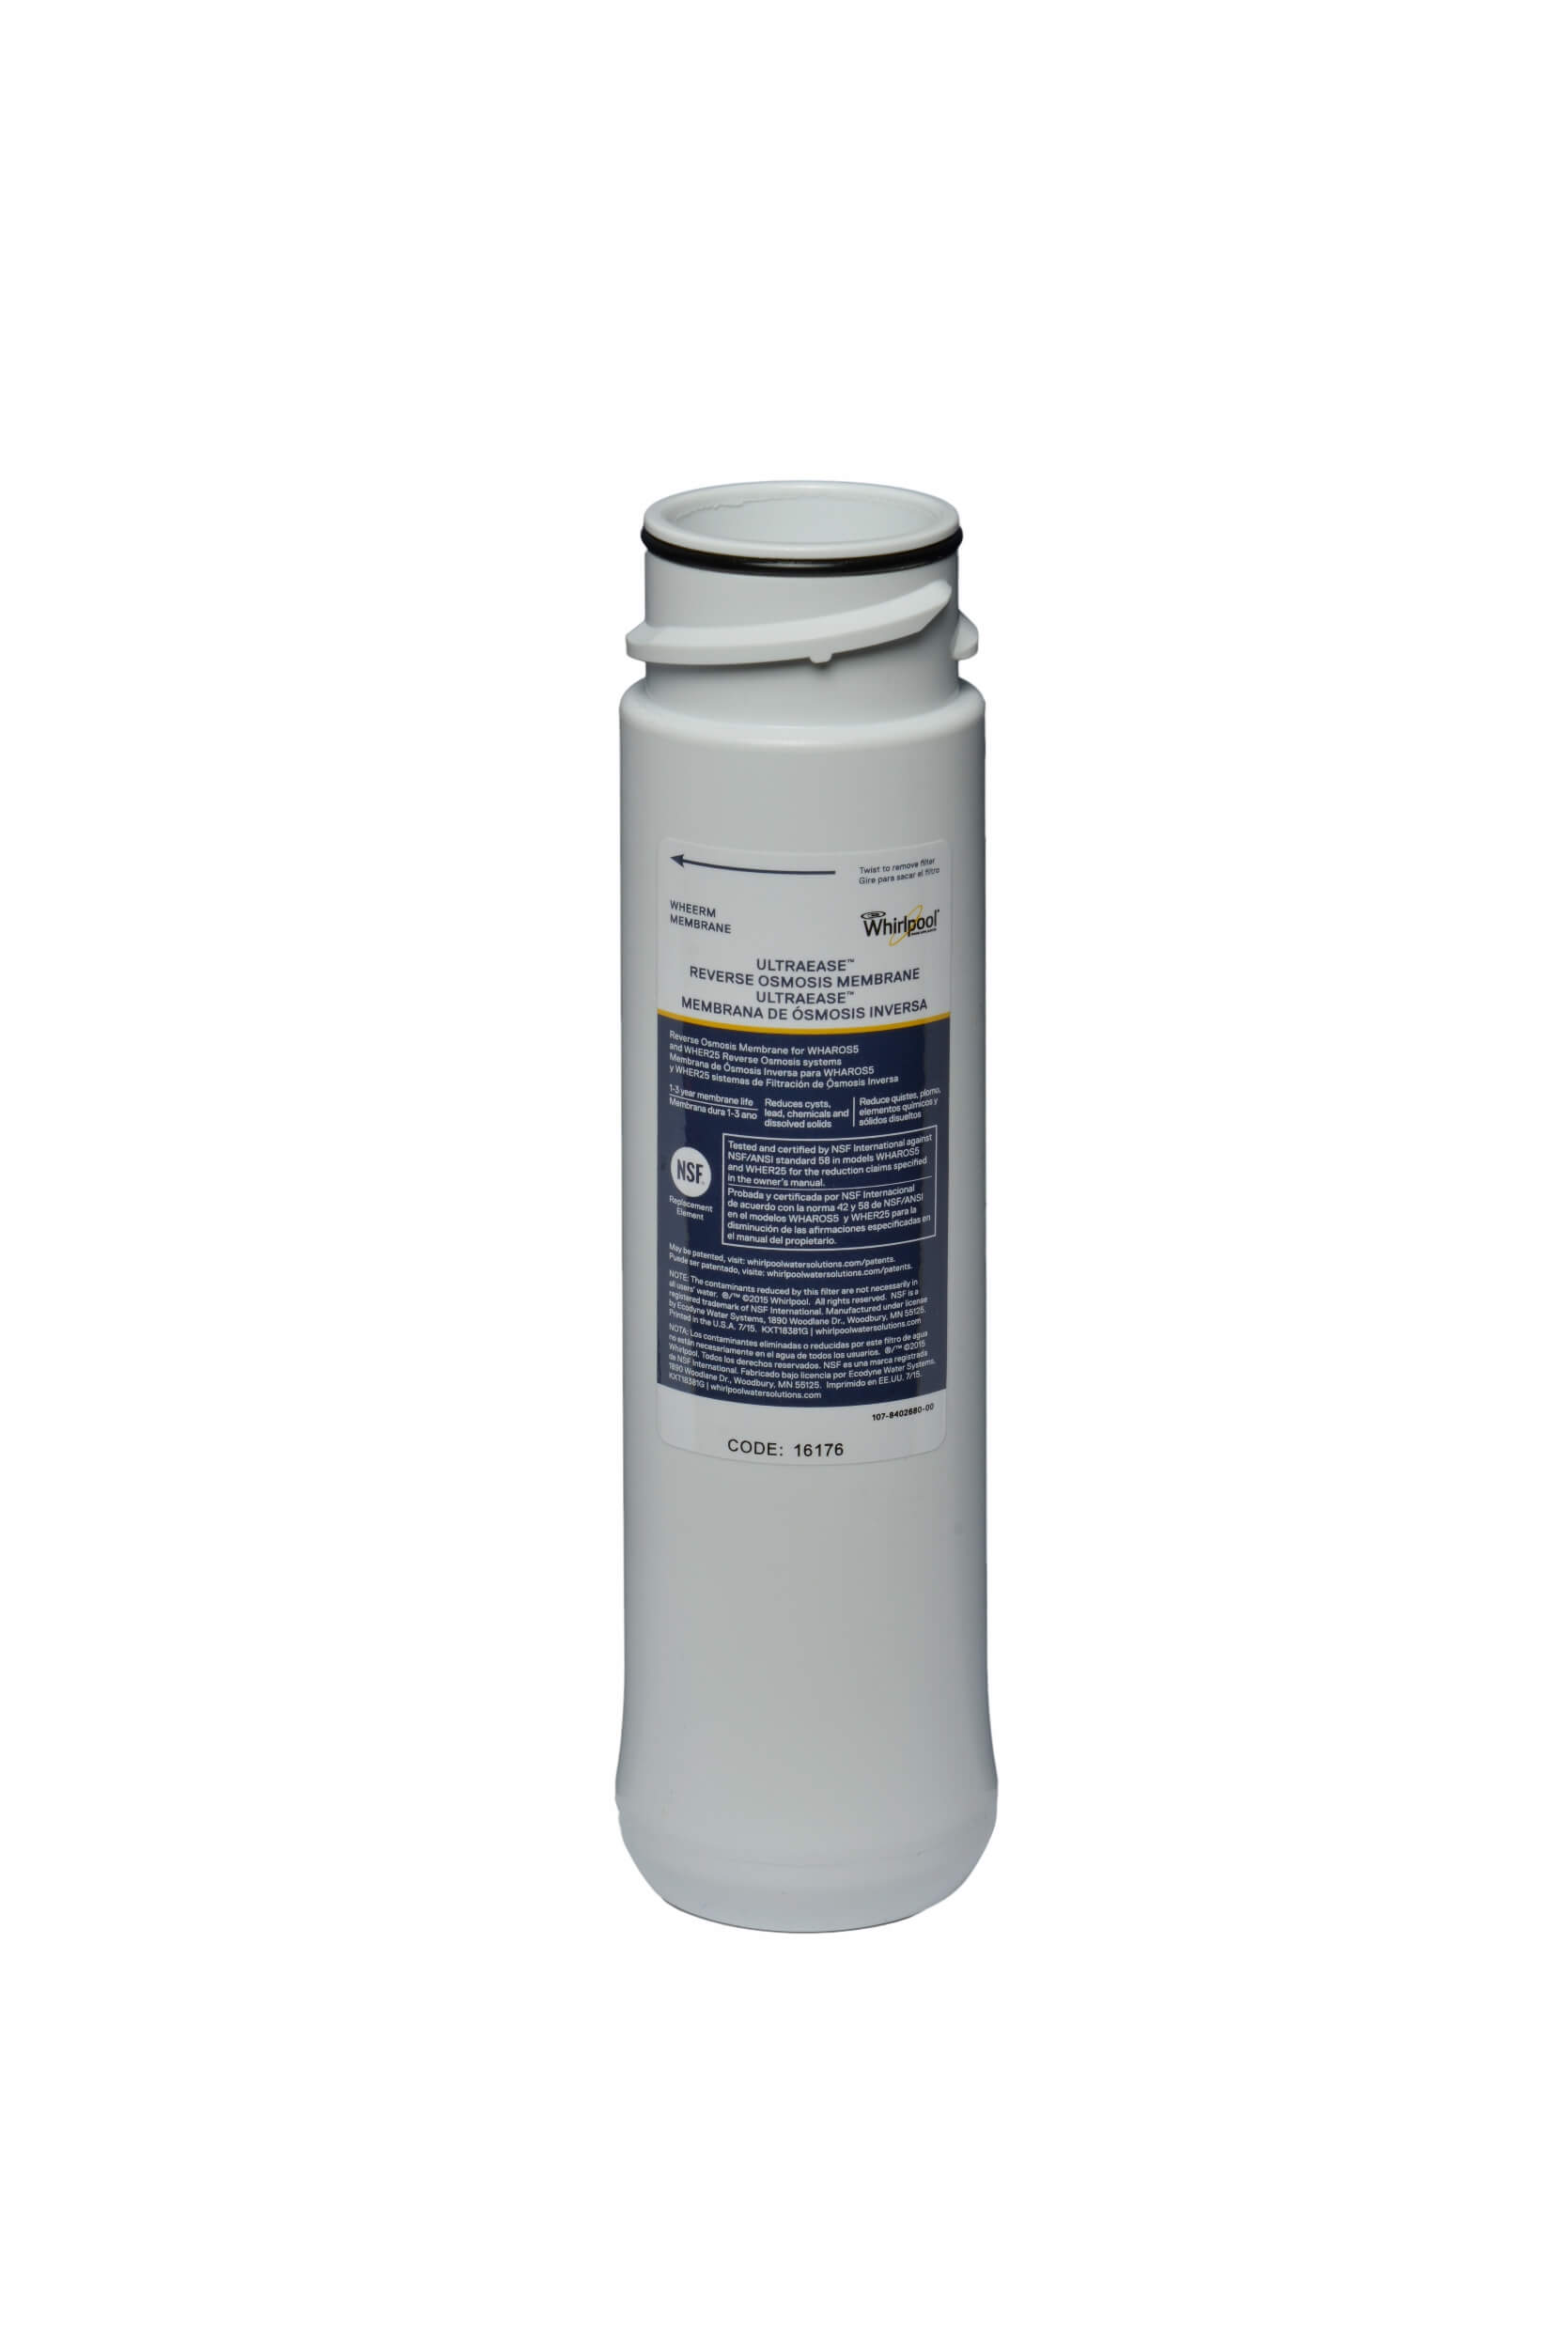 Replacement Water Filters Whirlpool